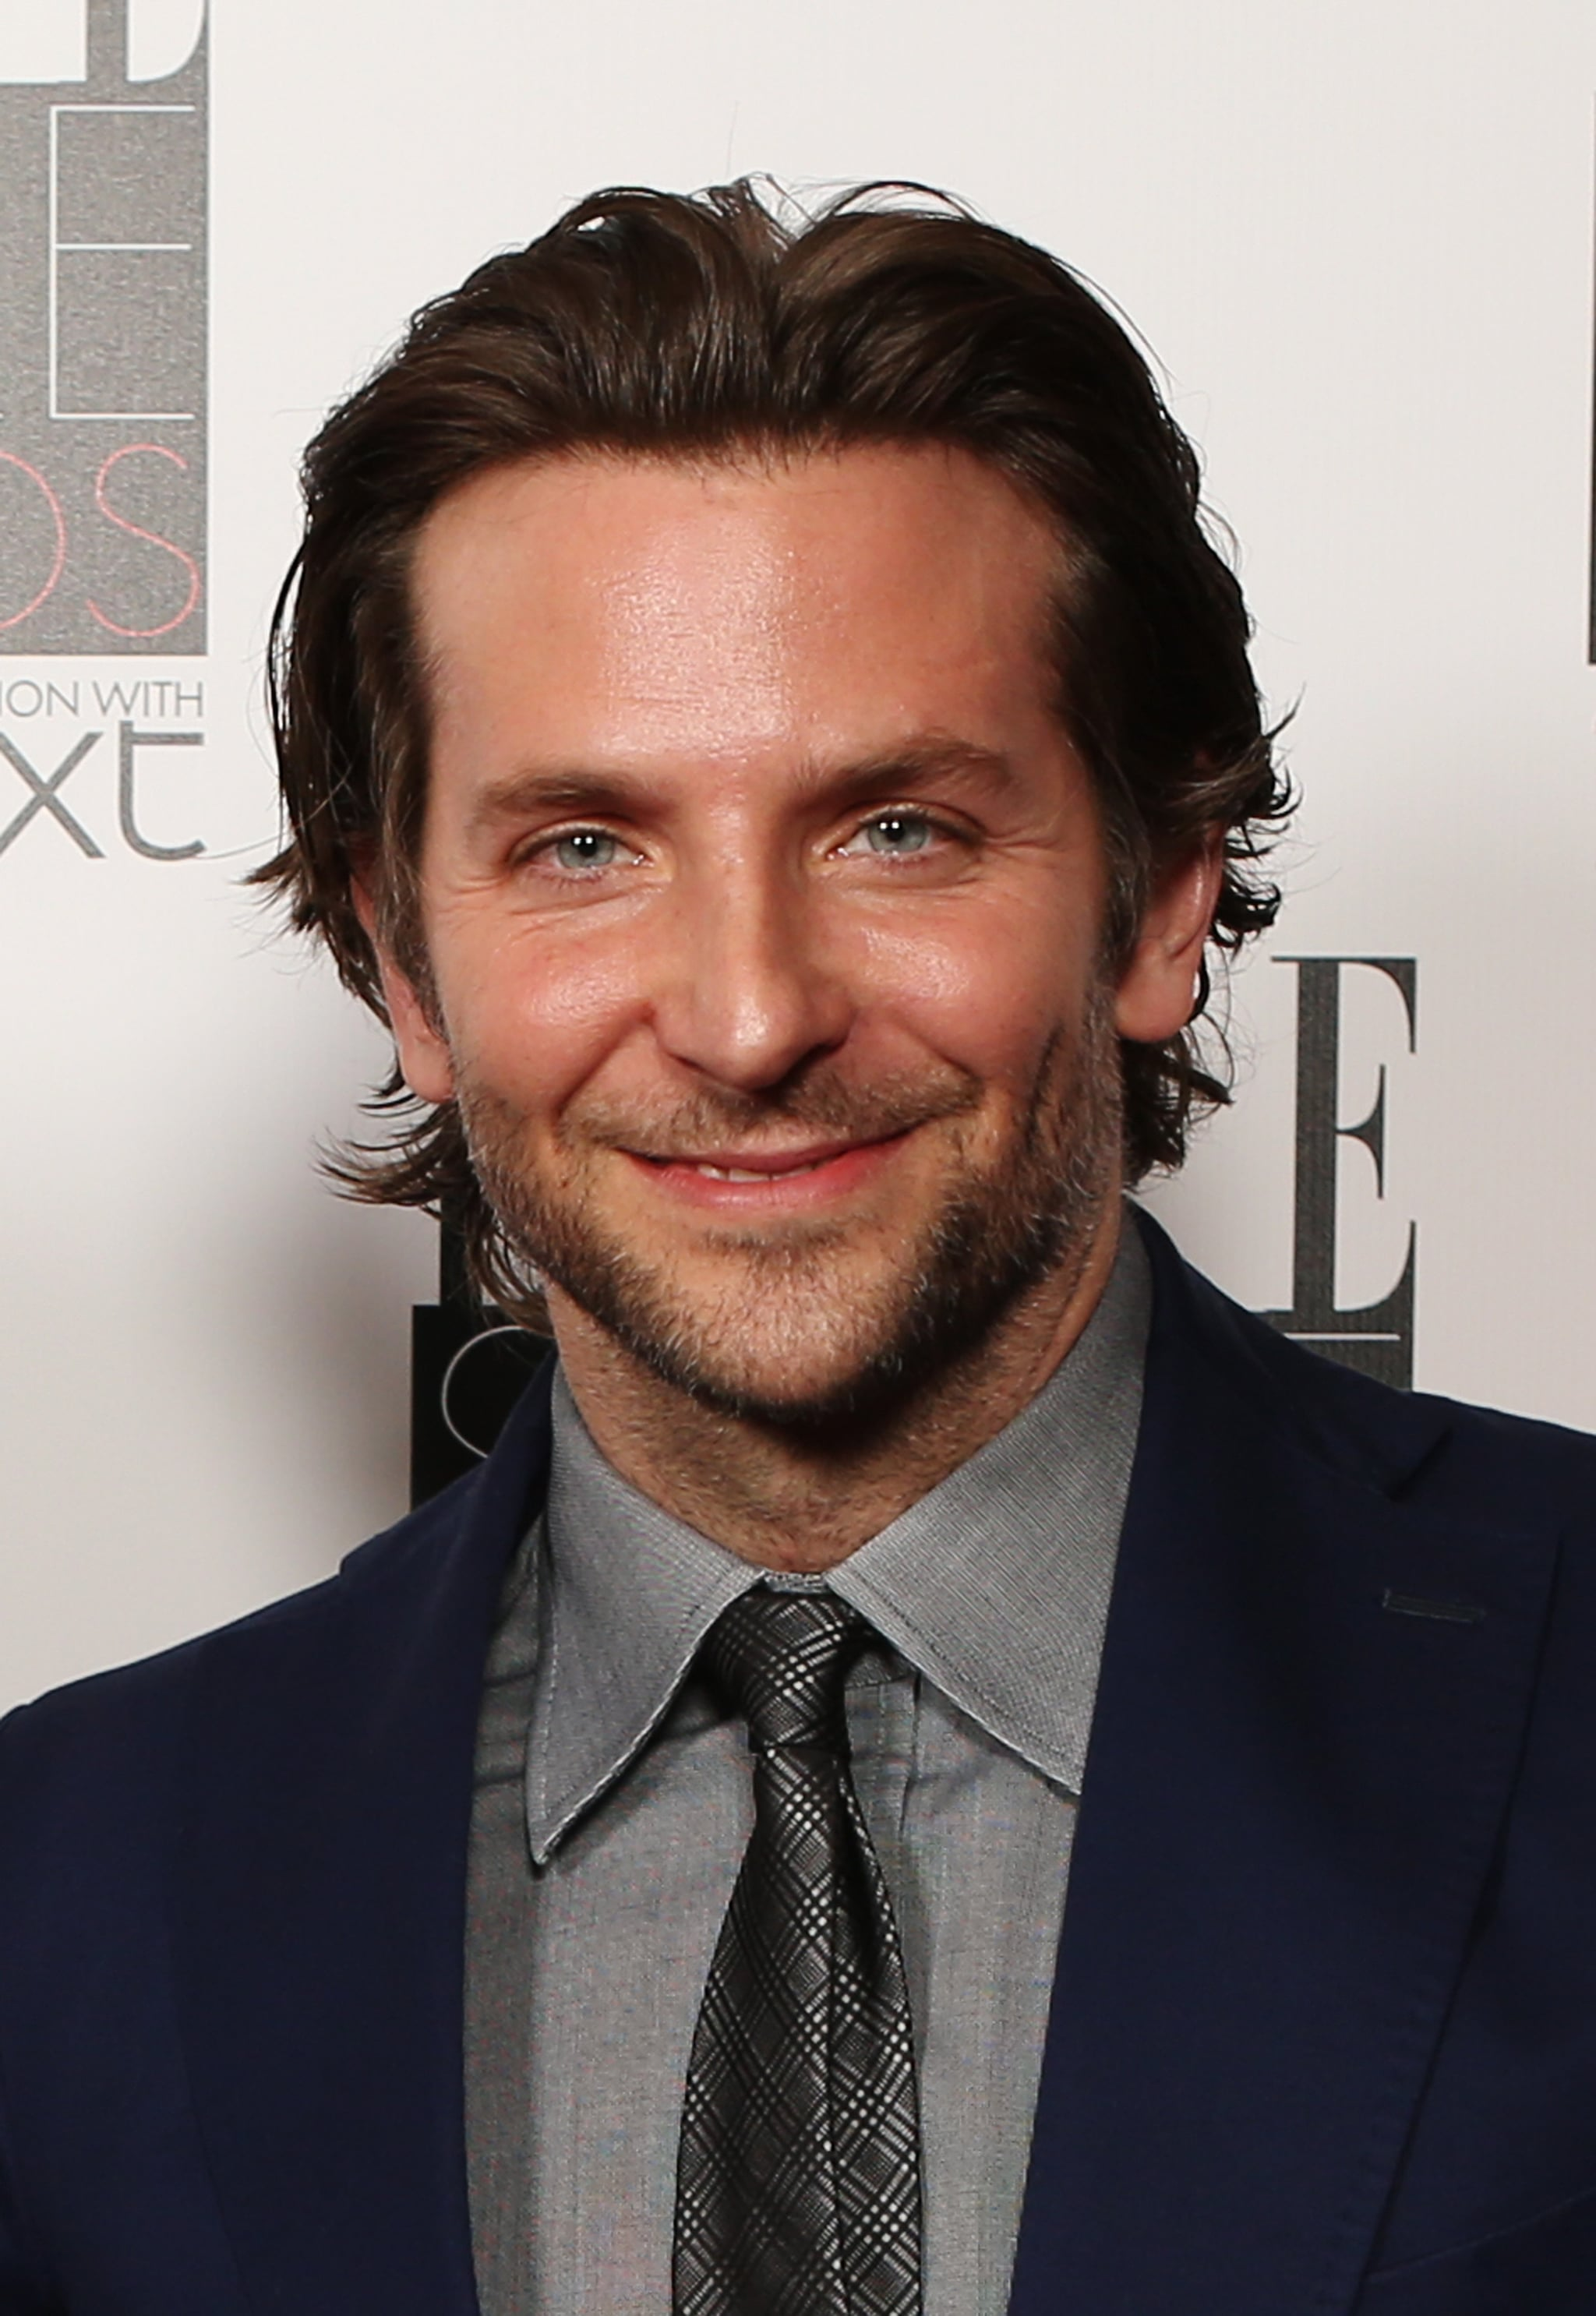 Bradley Cooper attended the Elle Style Awards.